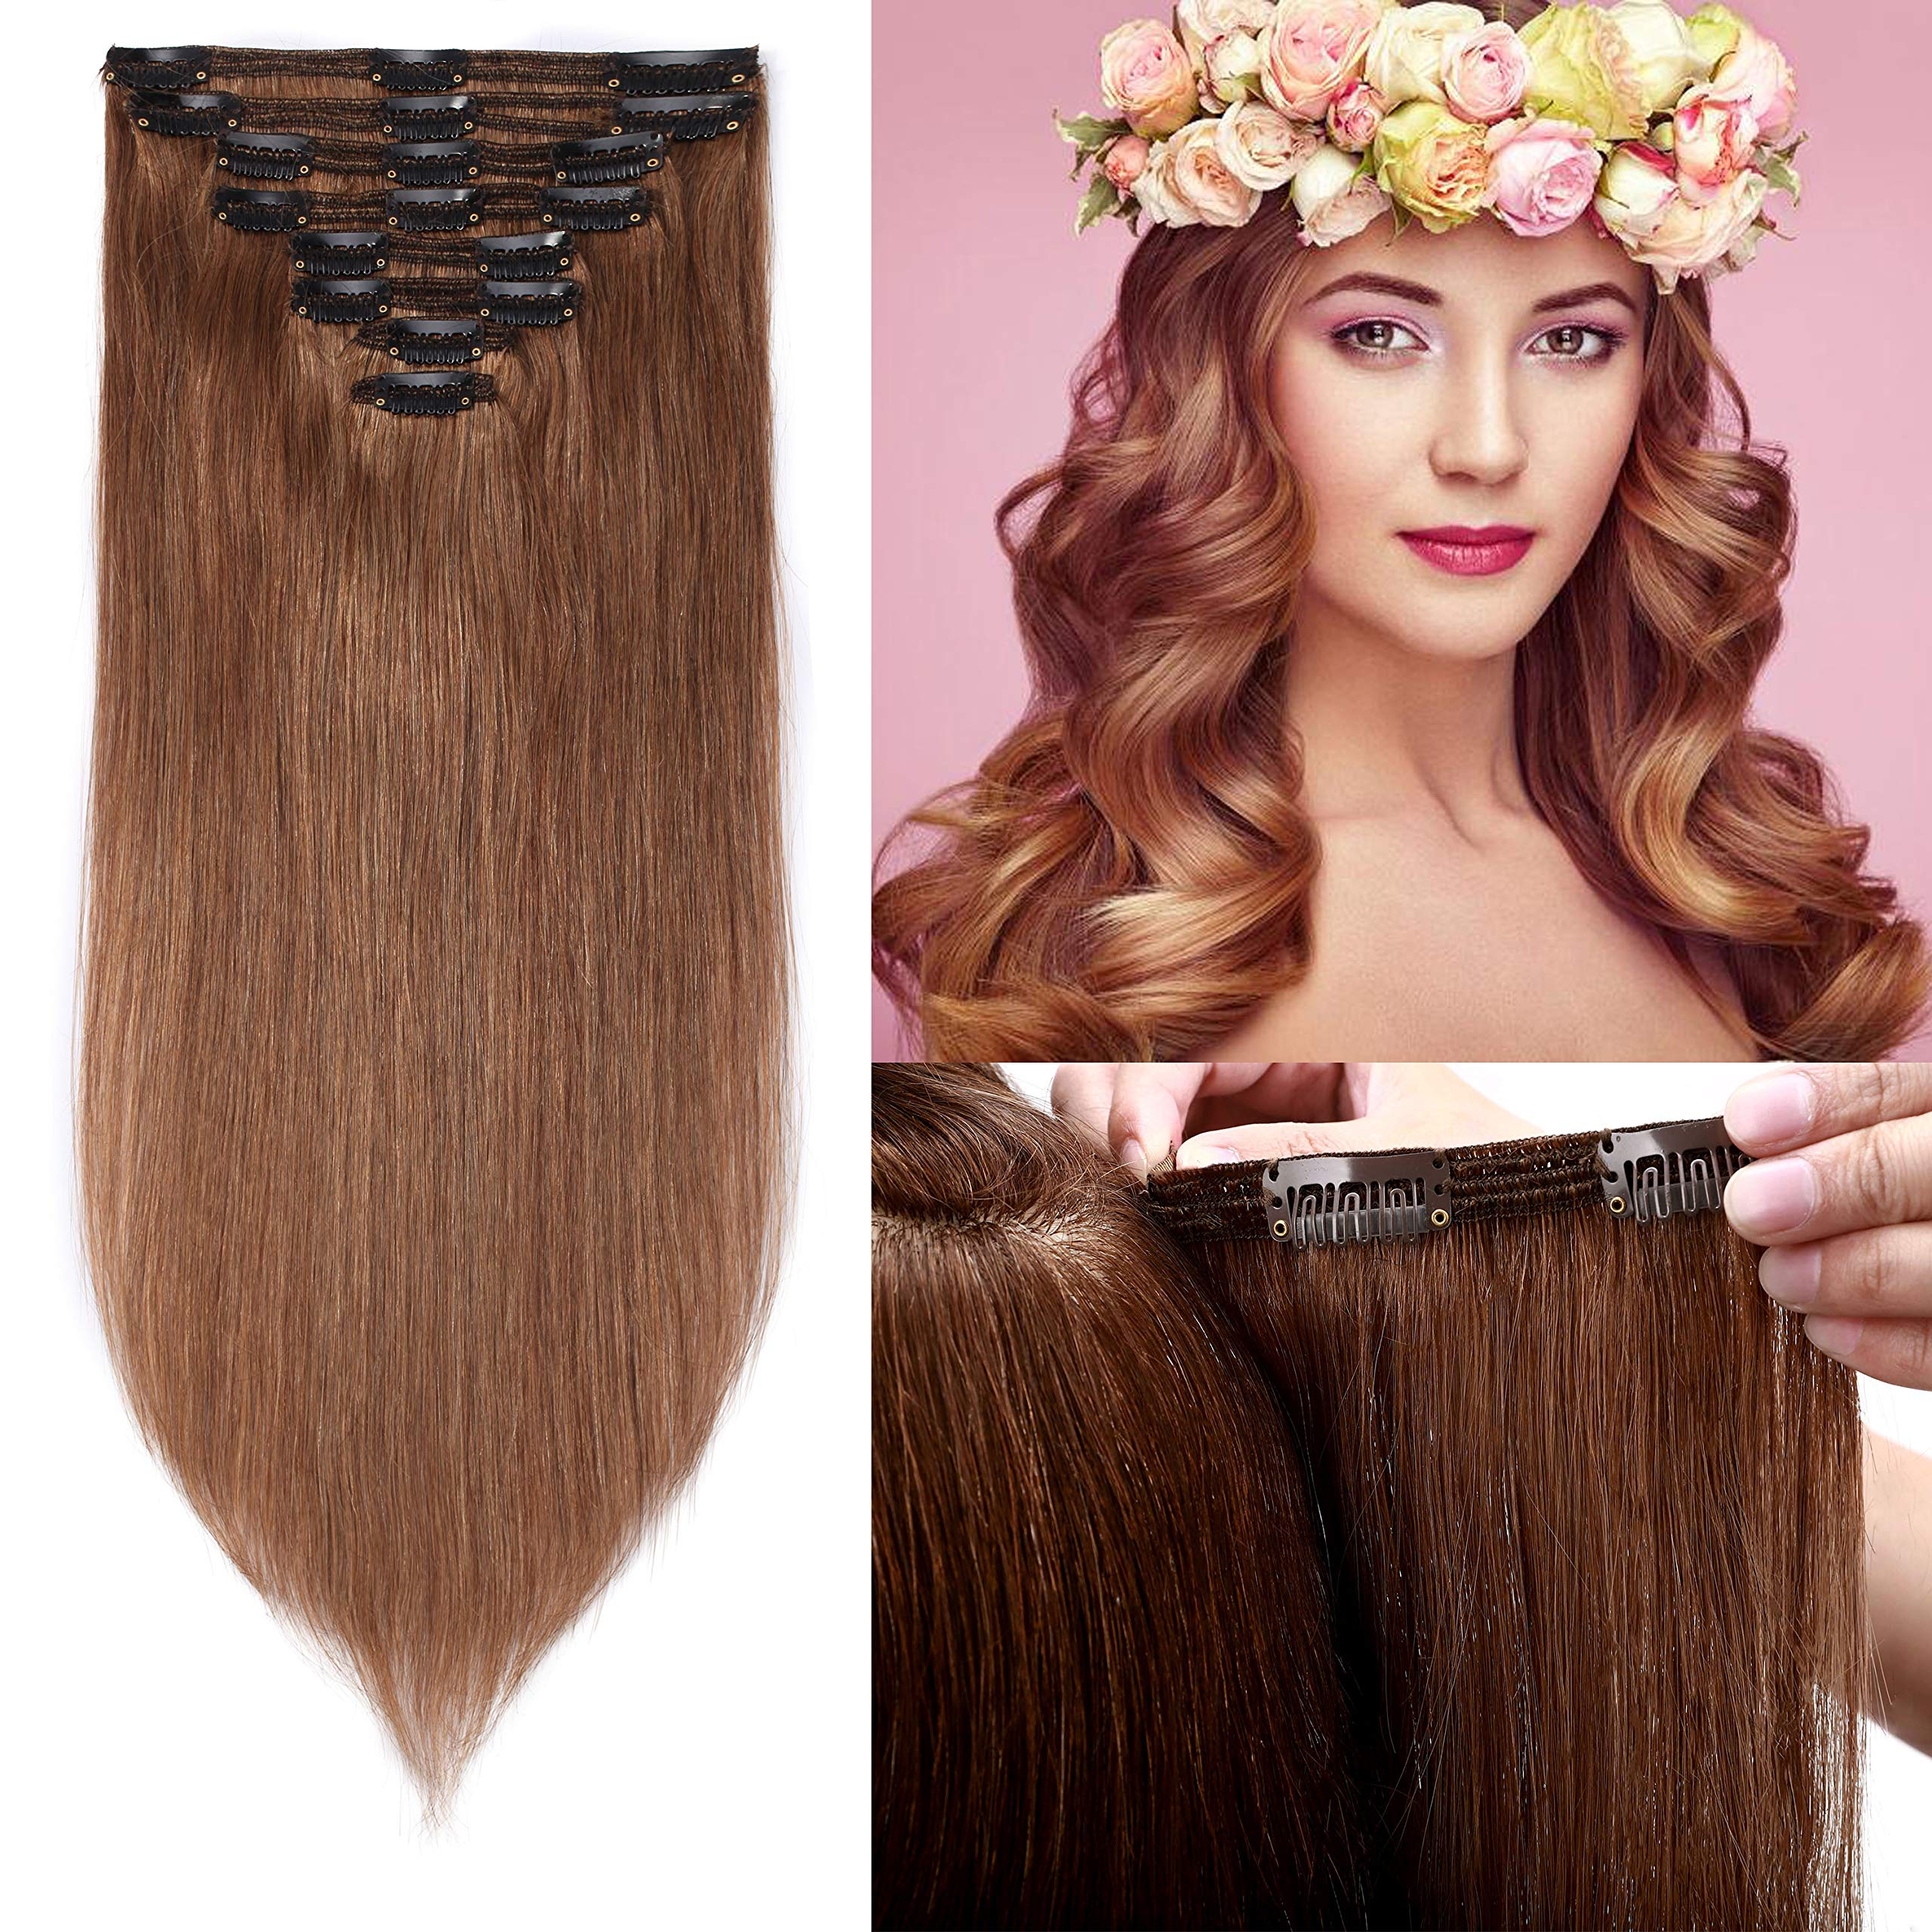 "S-noilite 22"" Thicken Clip in Hair Double Weft 100% Real Human Hair Made 160grams Long Straight Clip in Human Hair Extensions Light Brown 8pcs per pack for Full Head #6"